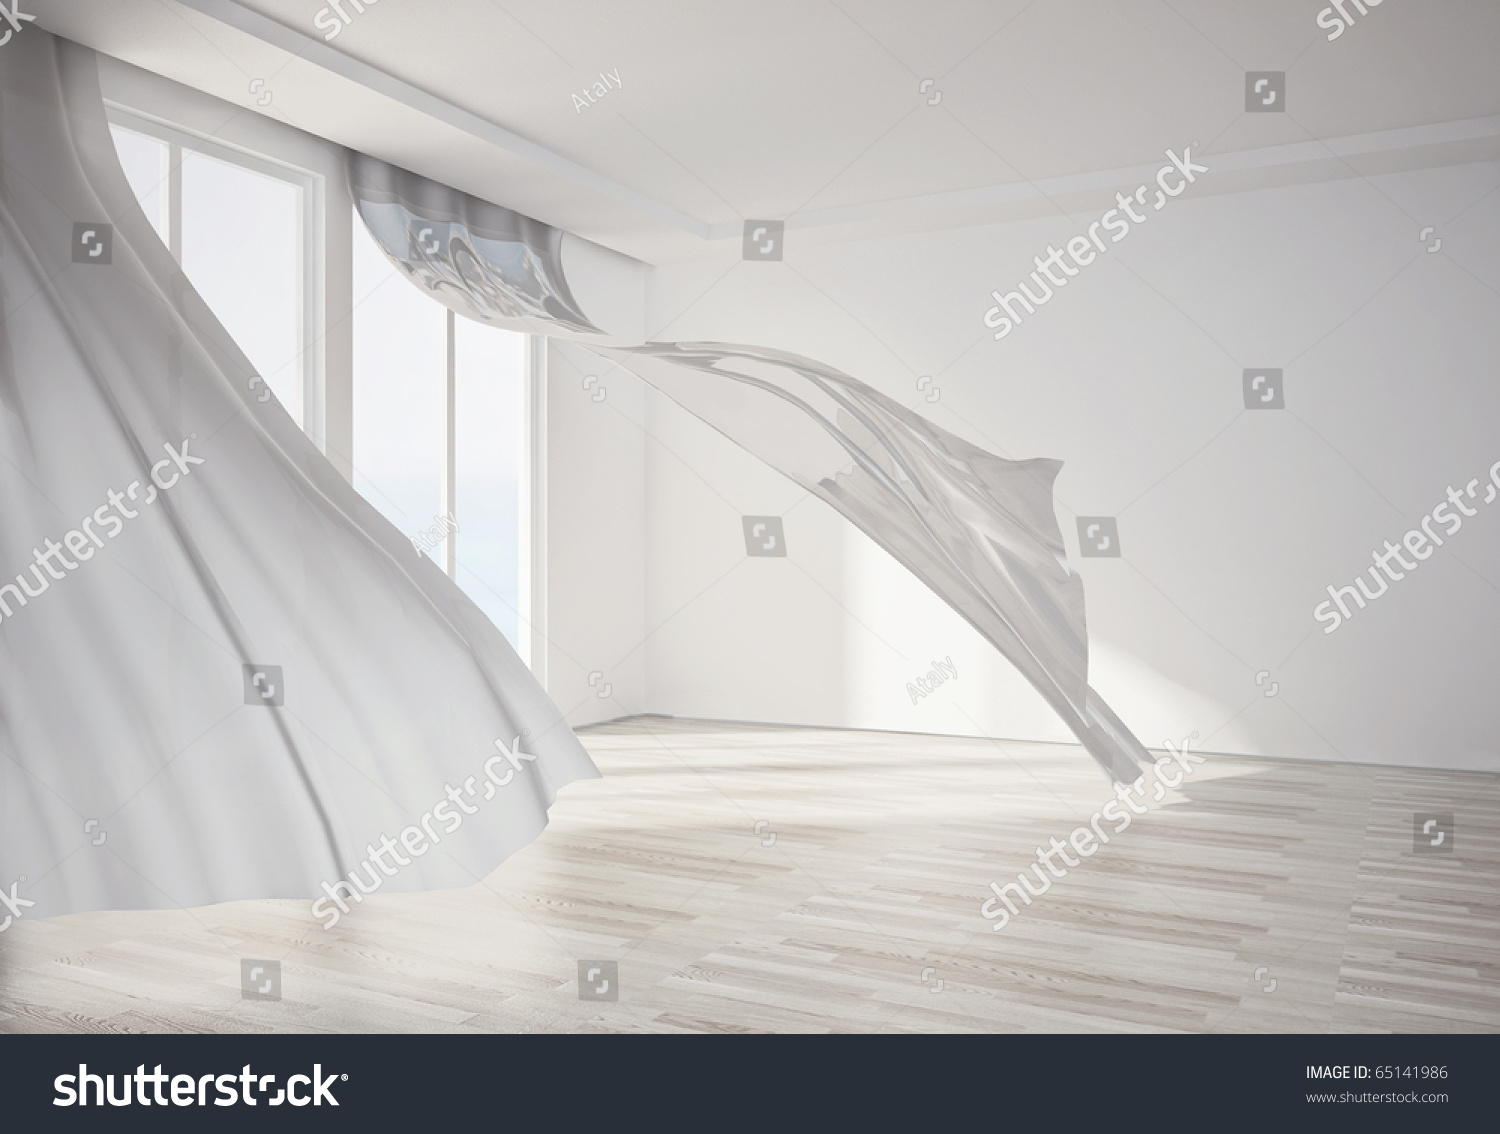 Wall Hangings For Bedroom Interior Room White Flowing Curtains 3d Stock Illustration